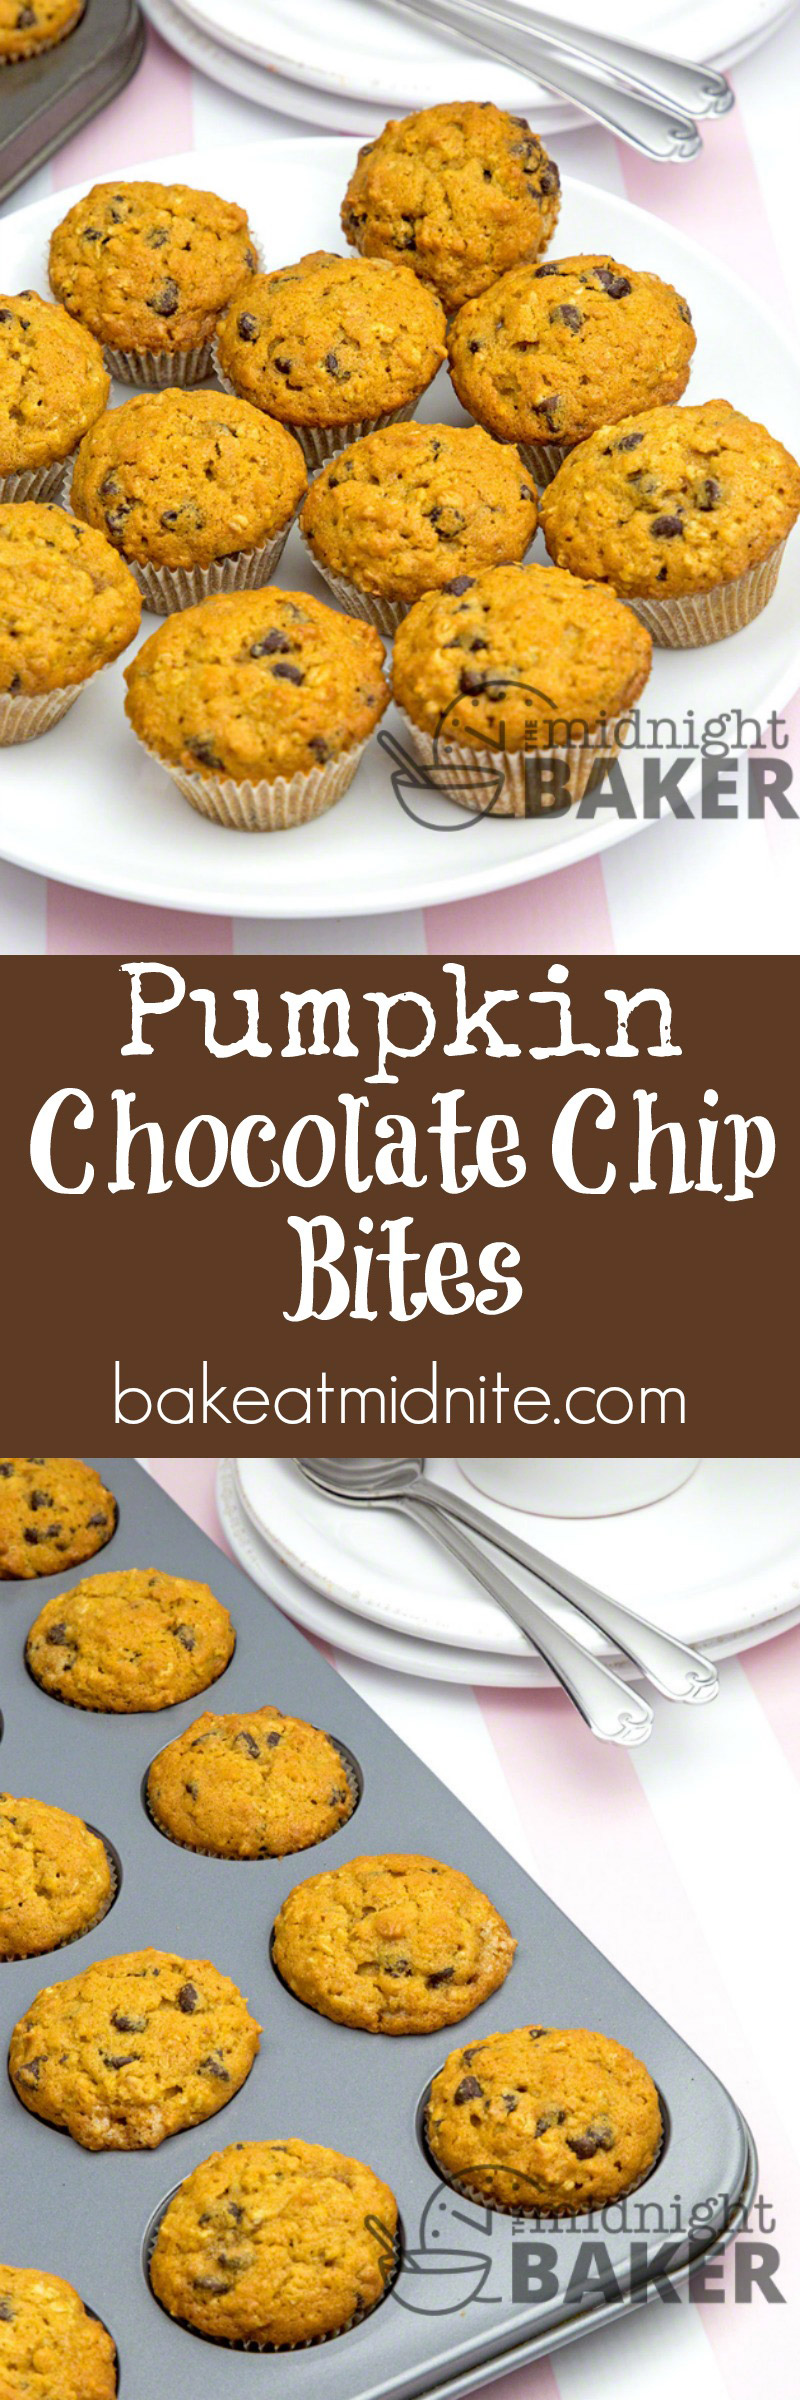 pumpkin-chocolate-chip-bites-lg-pin